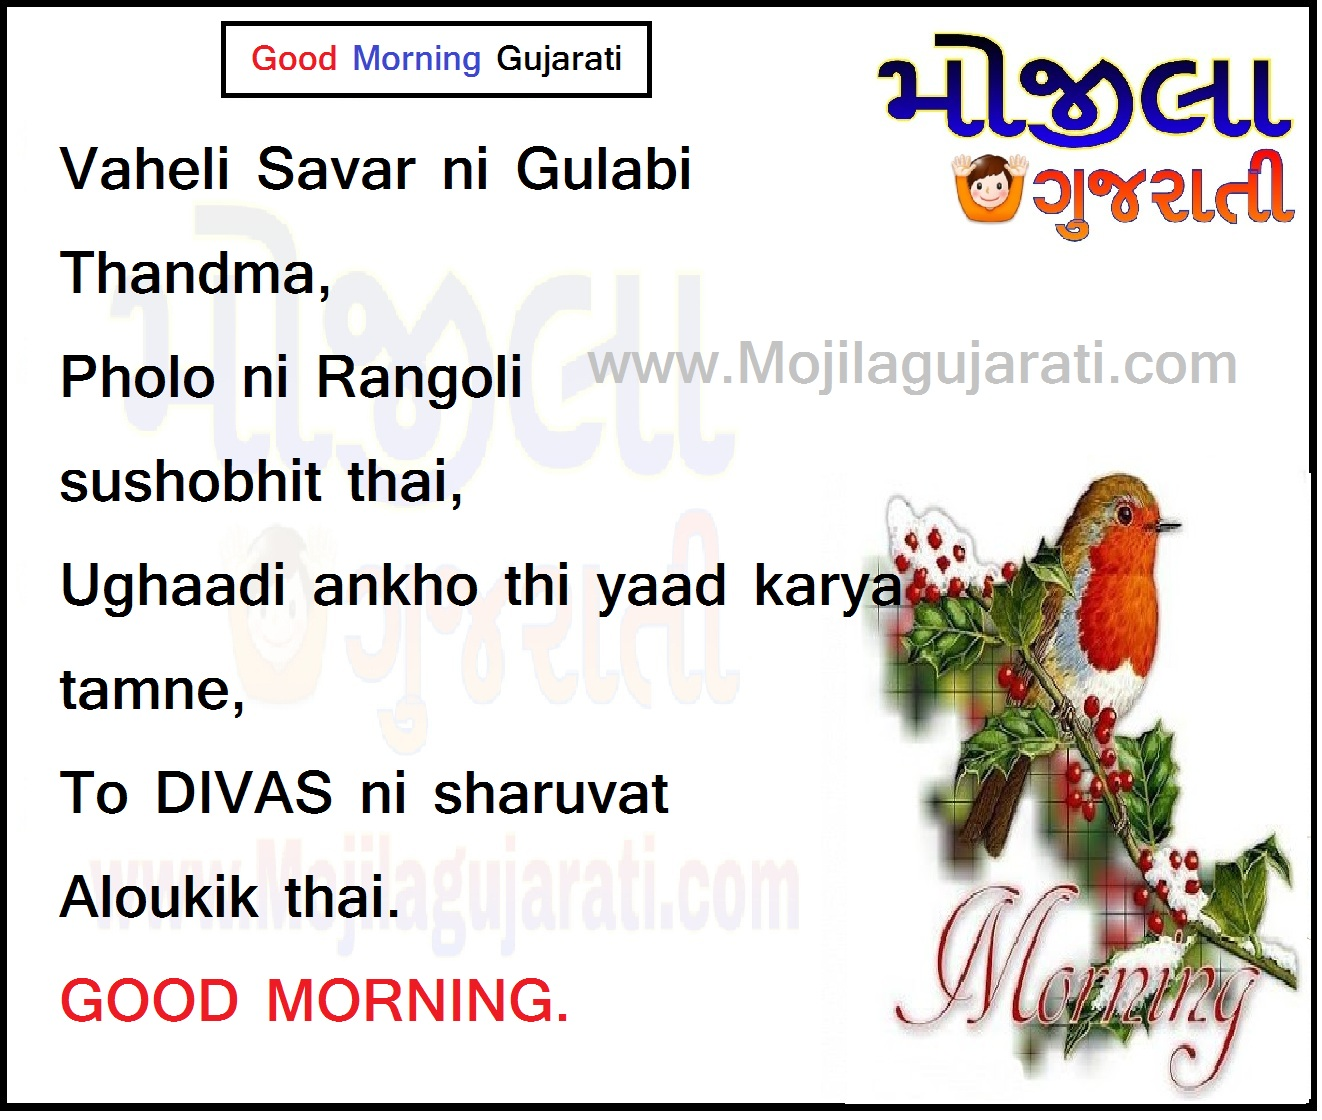 Beautiful Good Morning Wallpapers Good Morning With Good Morning Quotes In Gujarati Font Then Good Morning All Have A Nice Day